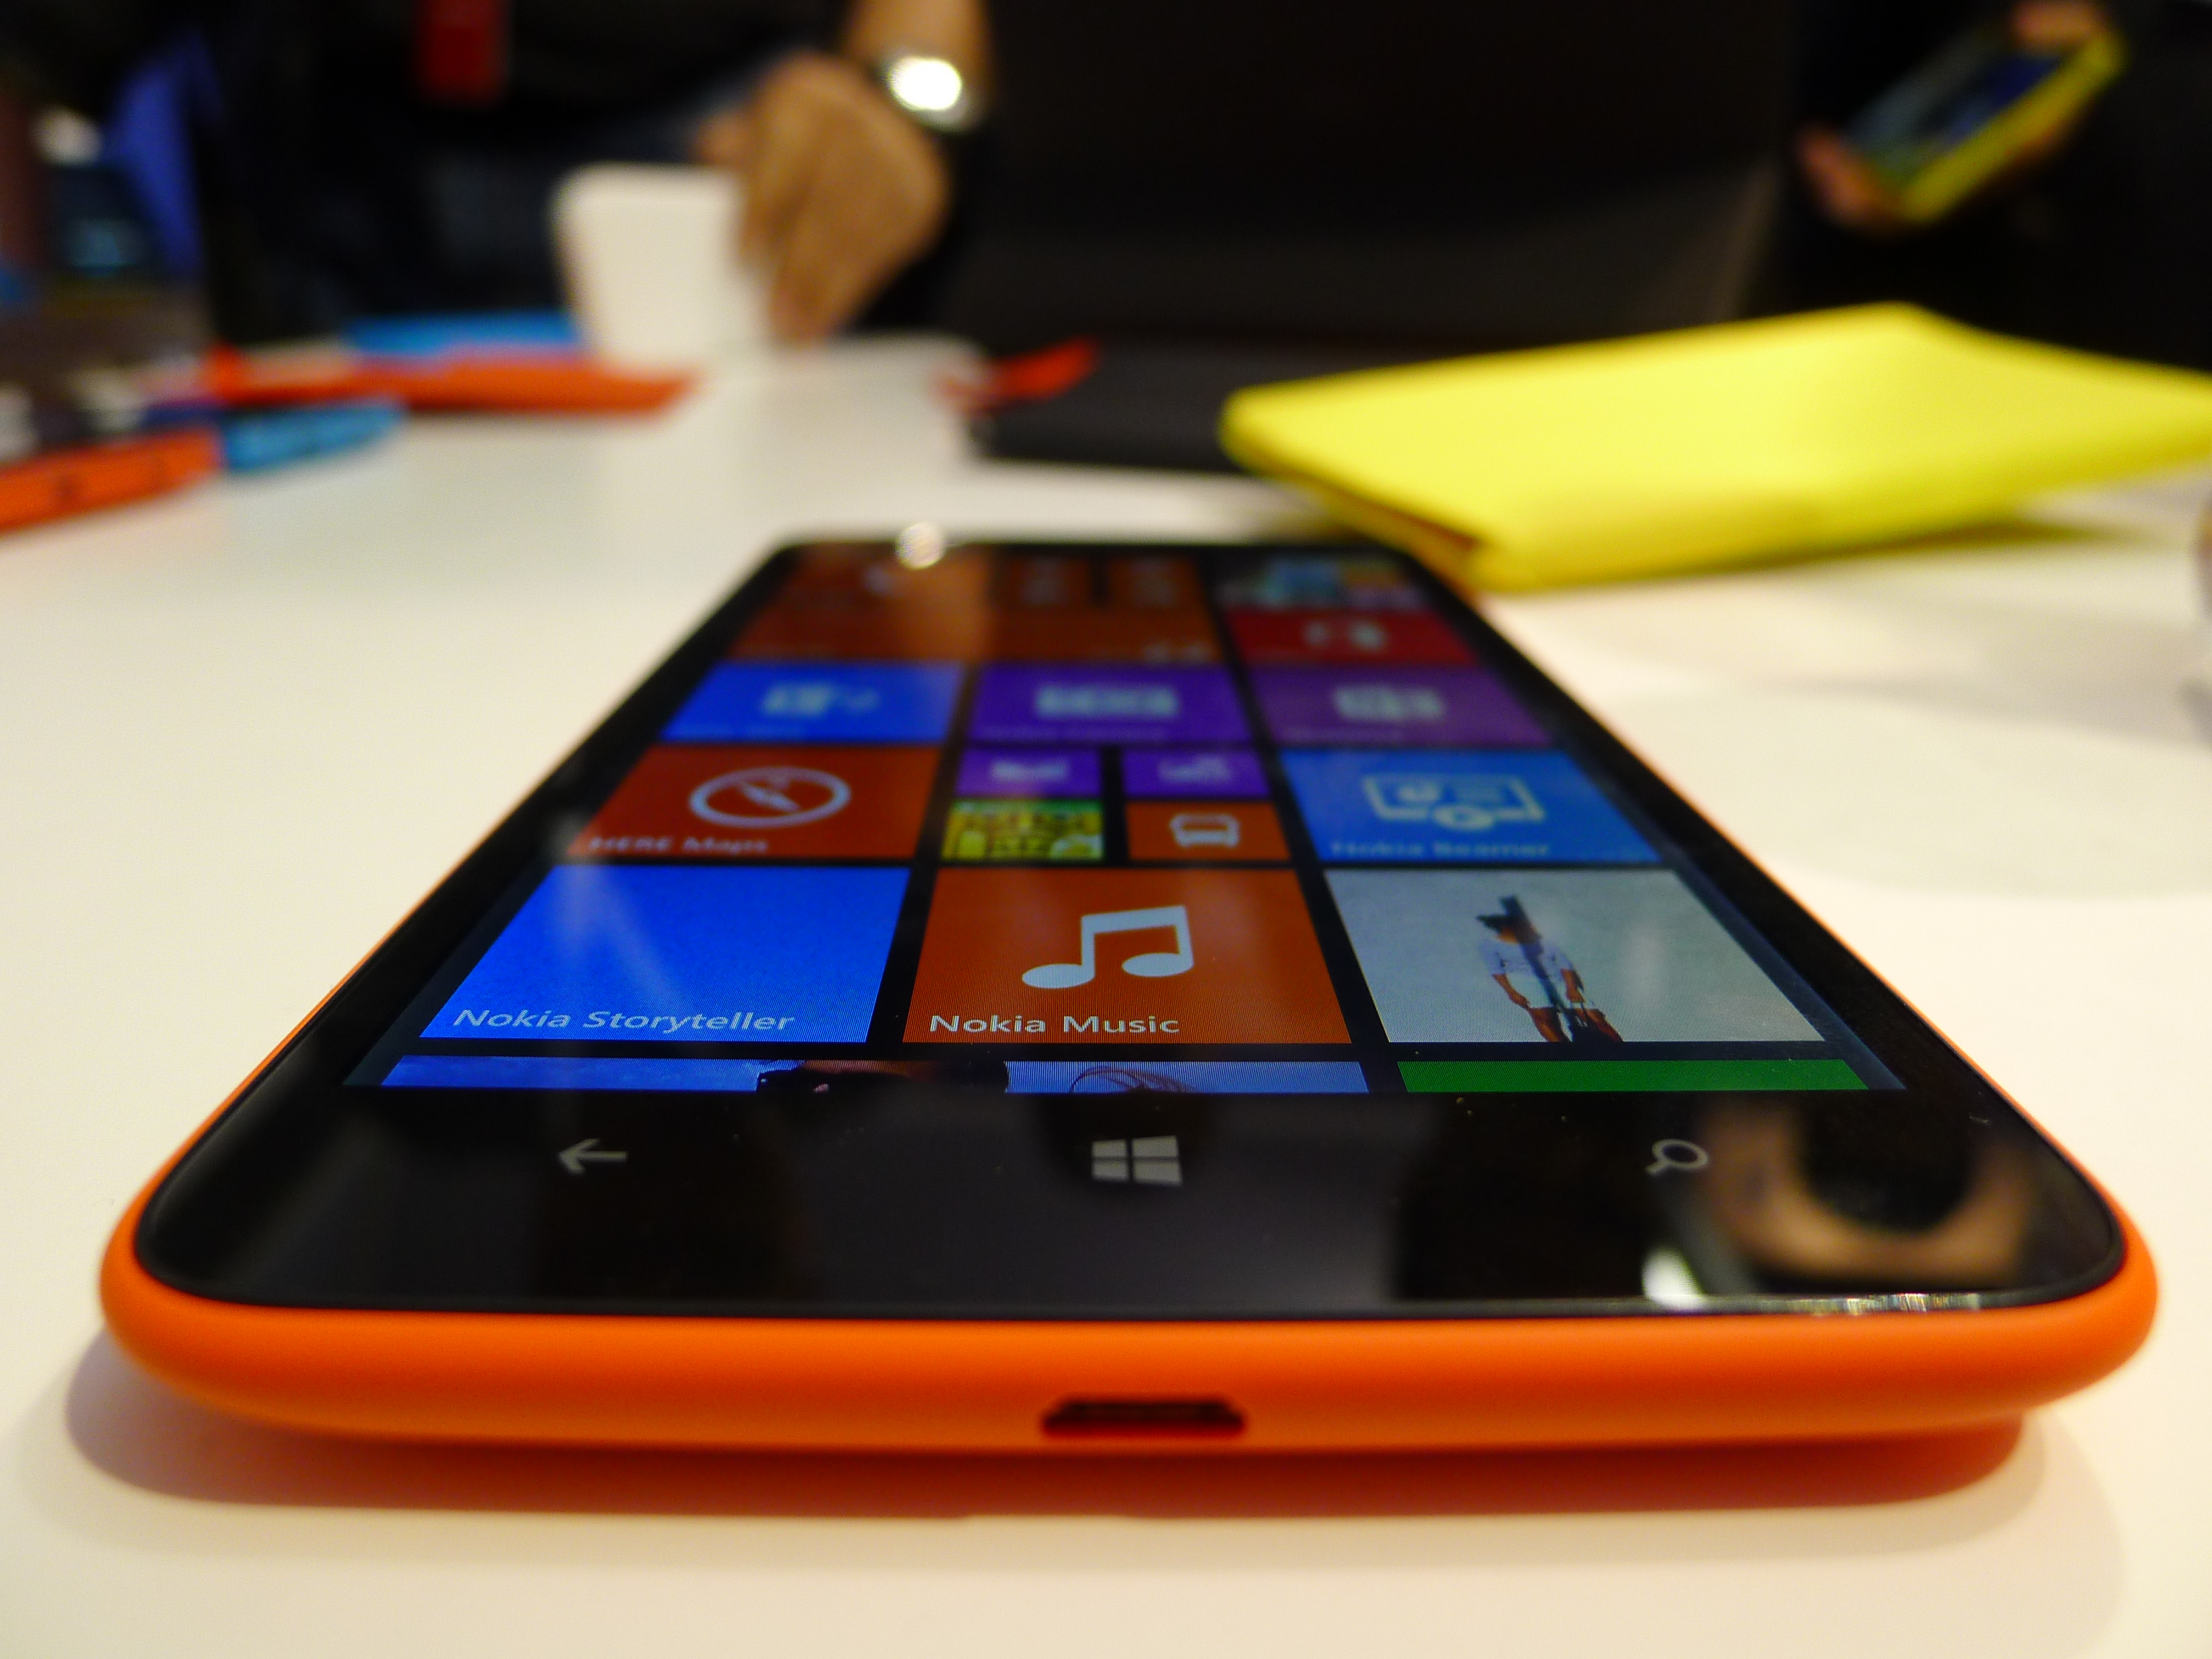 P1040489 Nokia Lumia 1320 hands on: How does this 6, 720p smartphone stack up against the Lumia 1520?